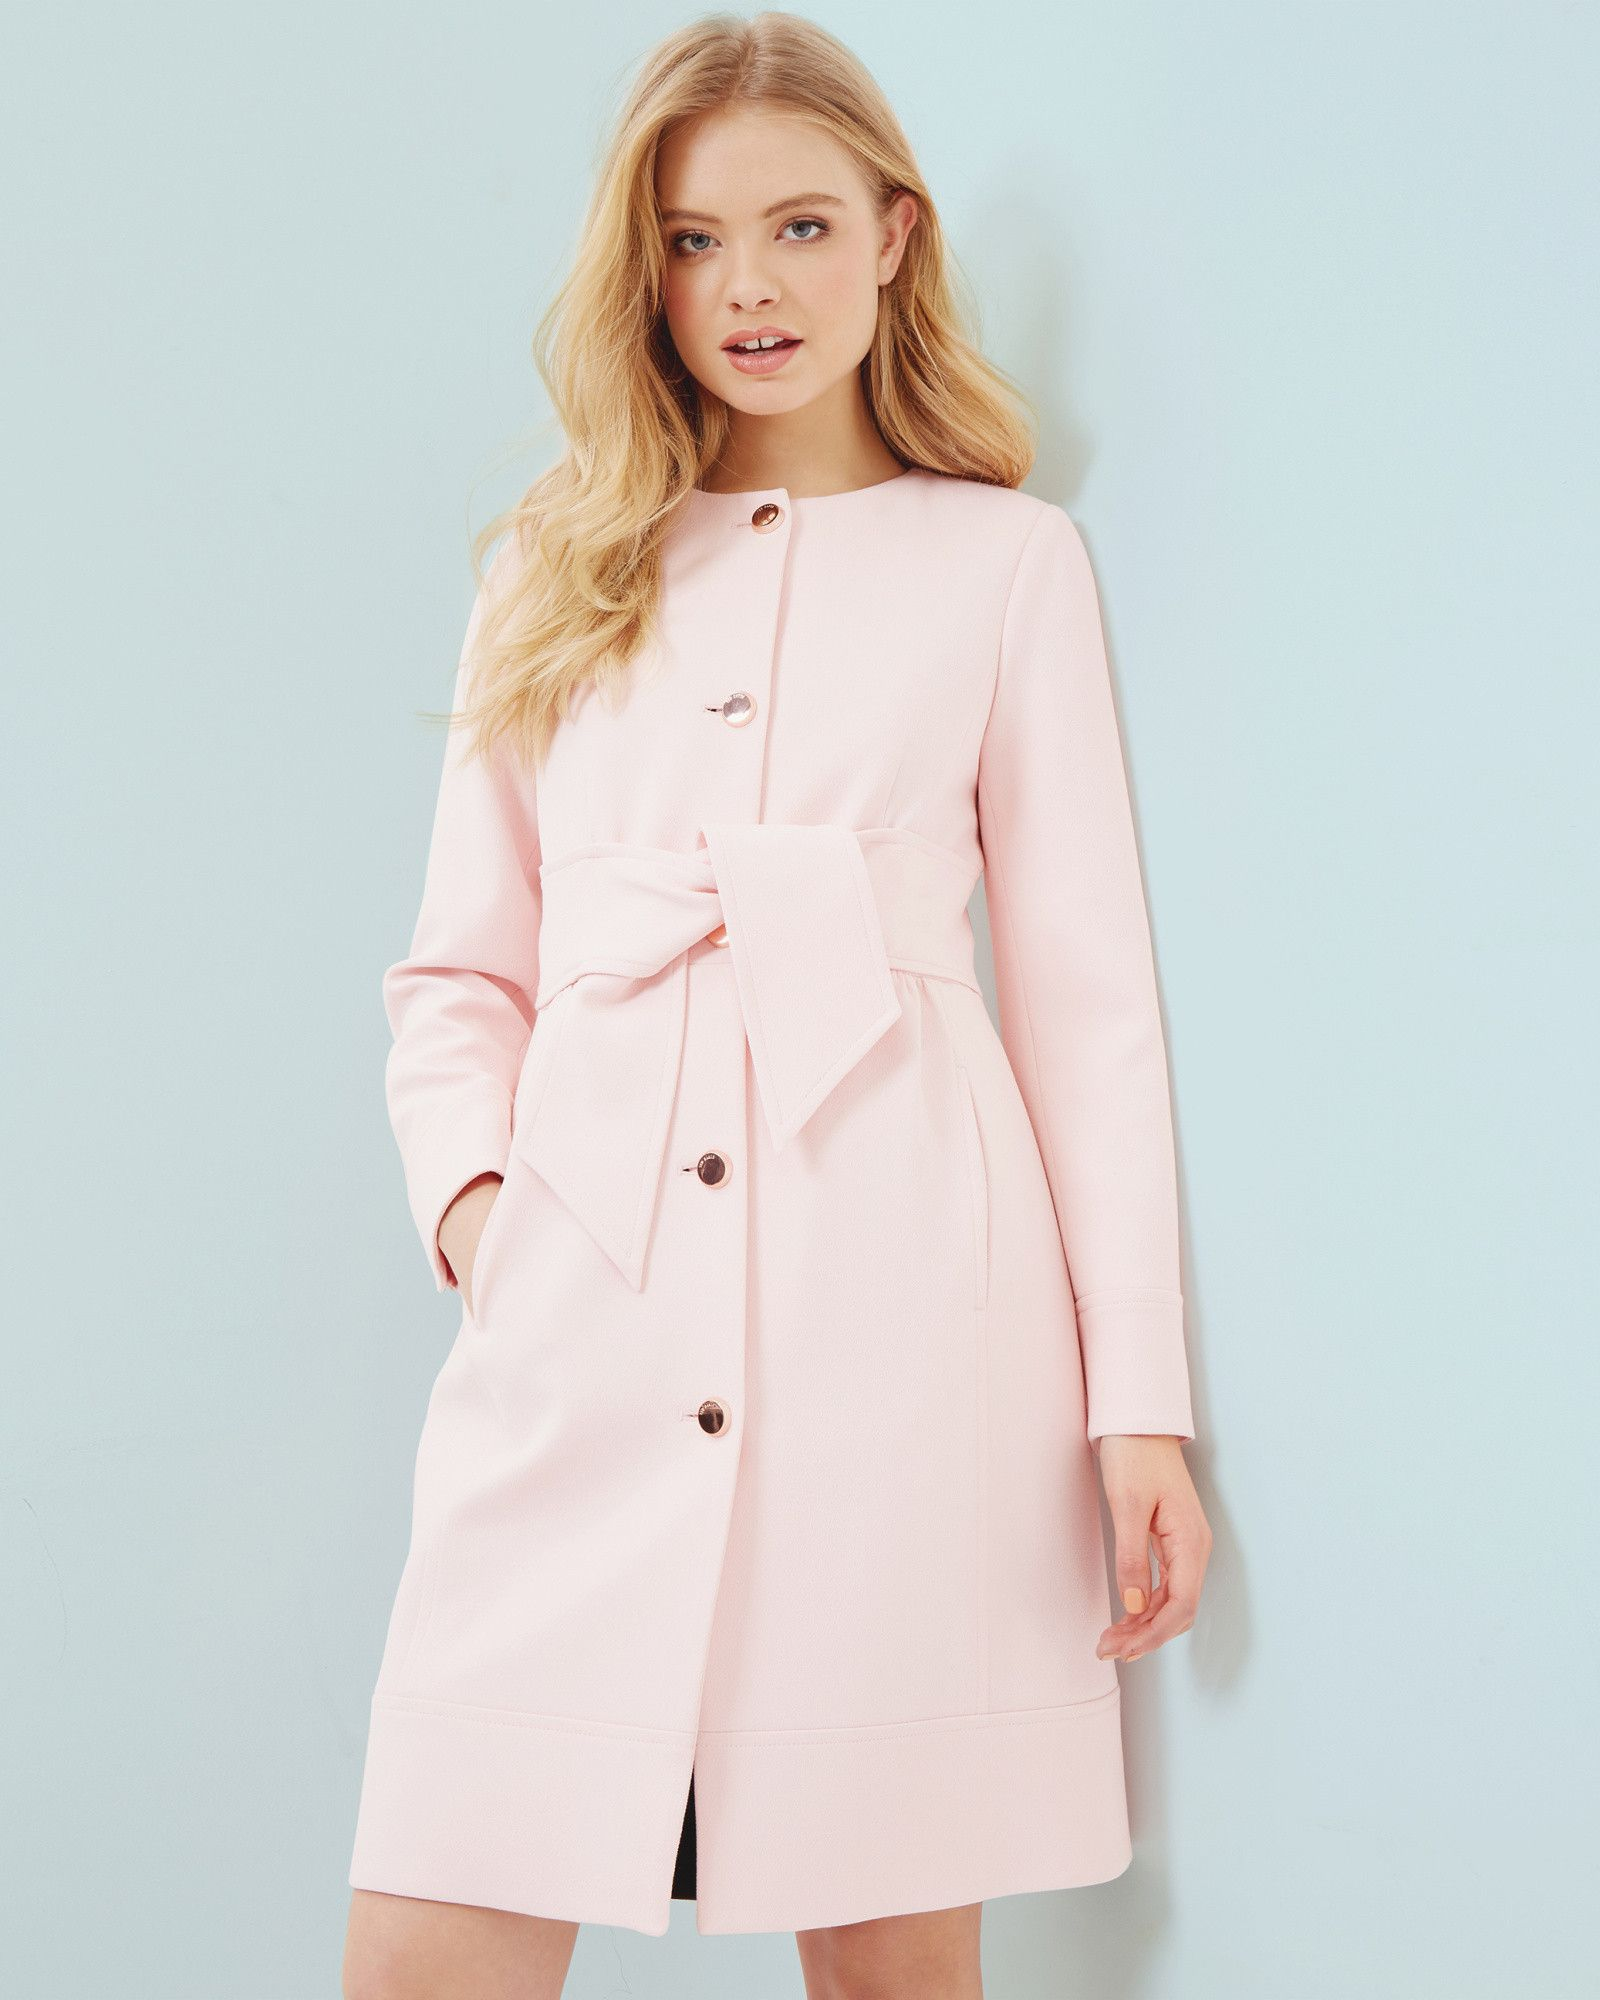 Collarless belted coat - Baby Pink | Jackets & Coats | Ted Baker ...